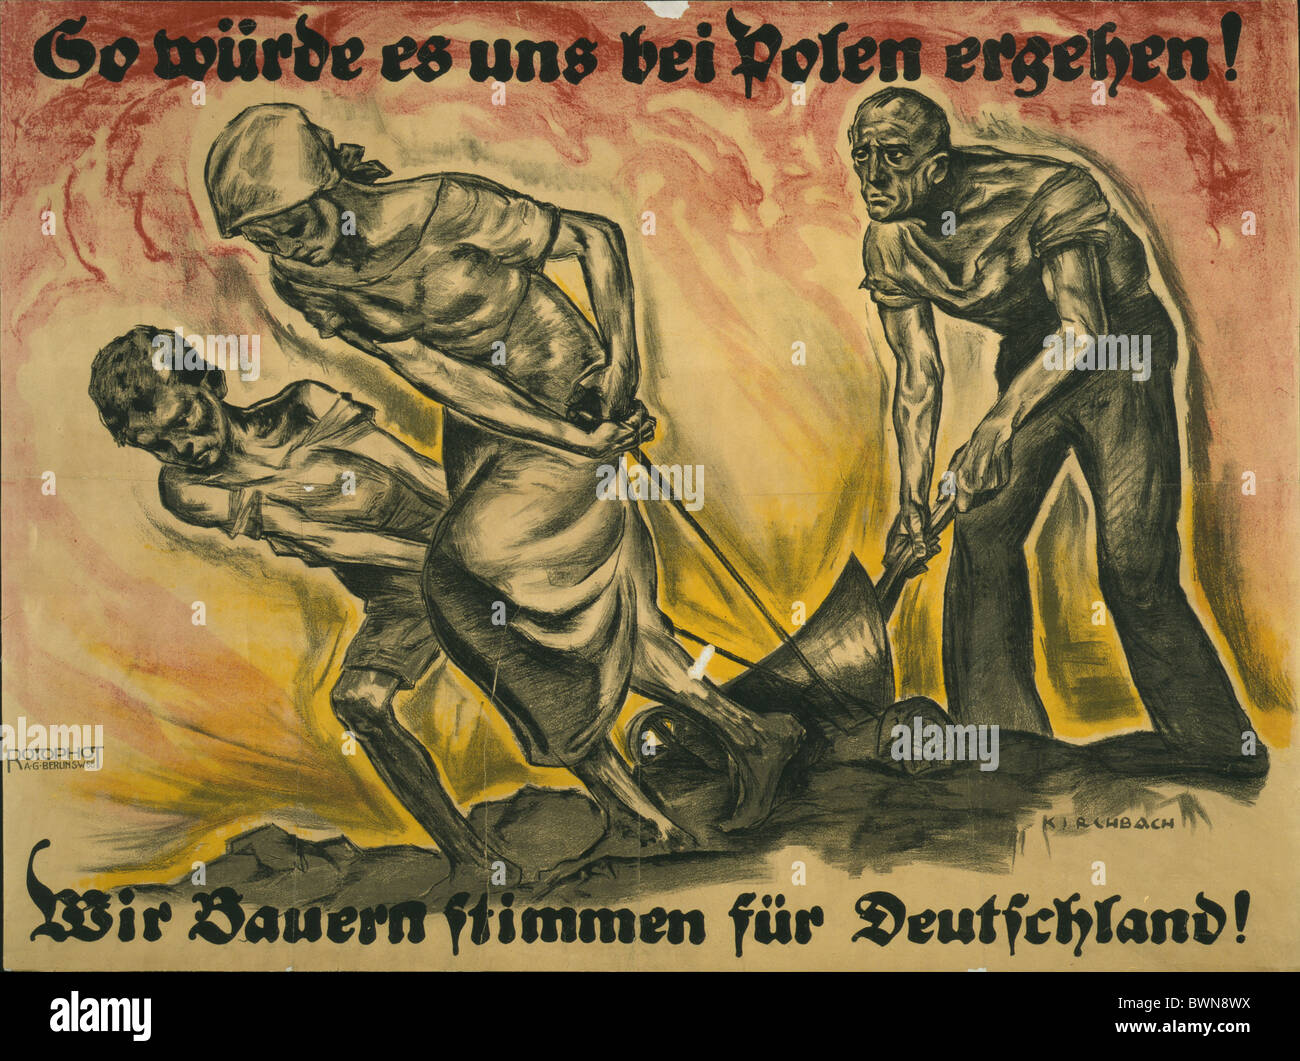 Germany Europe 1920 Propaganda against Poland history historical historic Weimar Republic German Reich farme - Stock Image